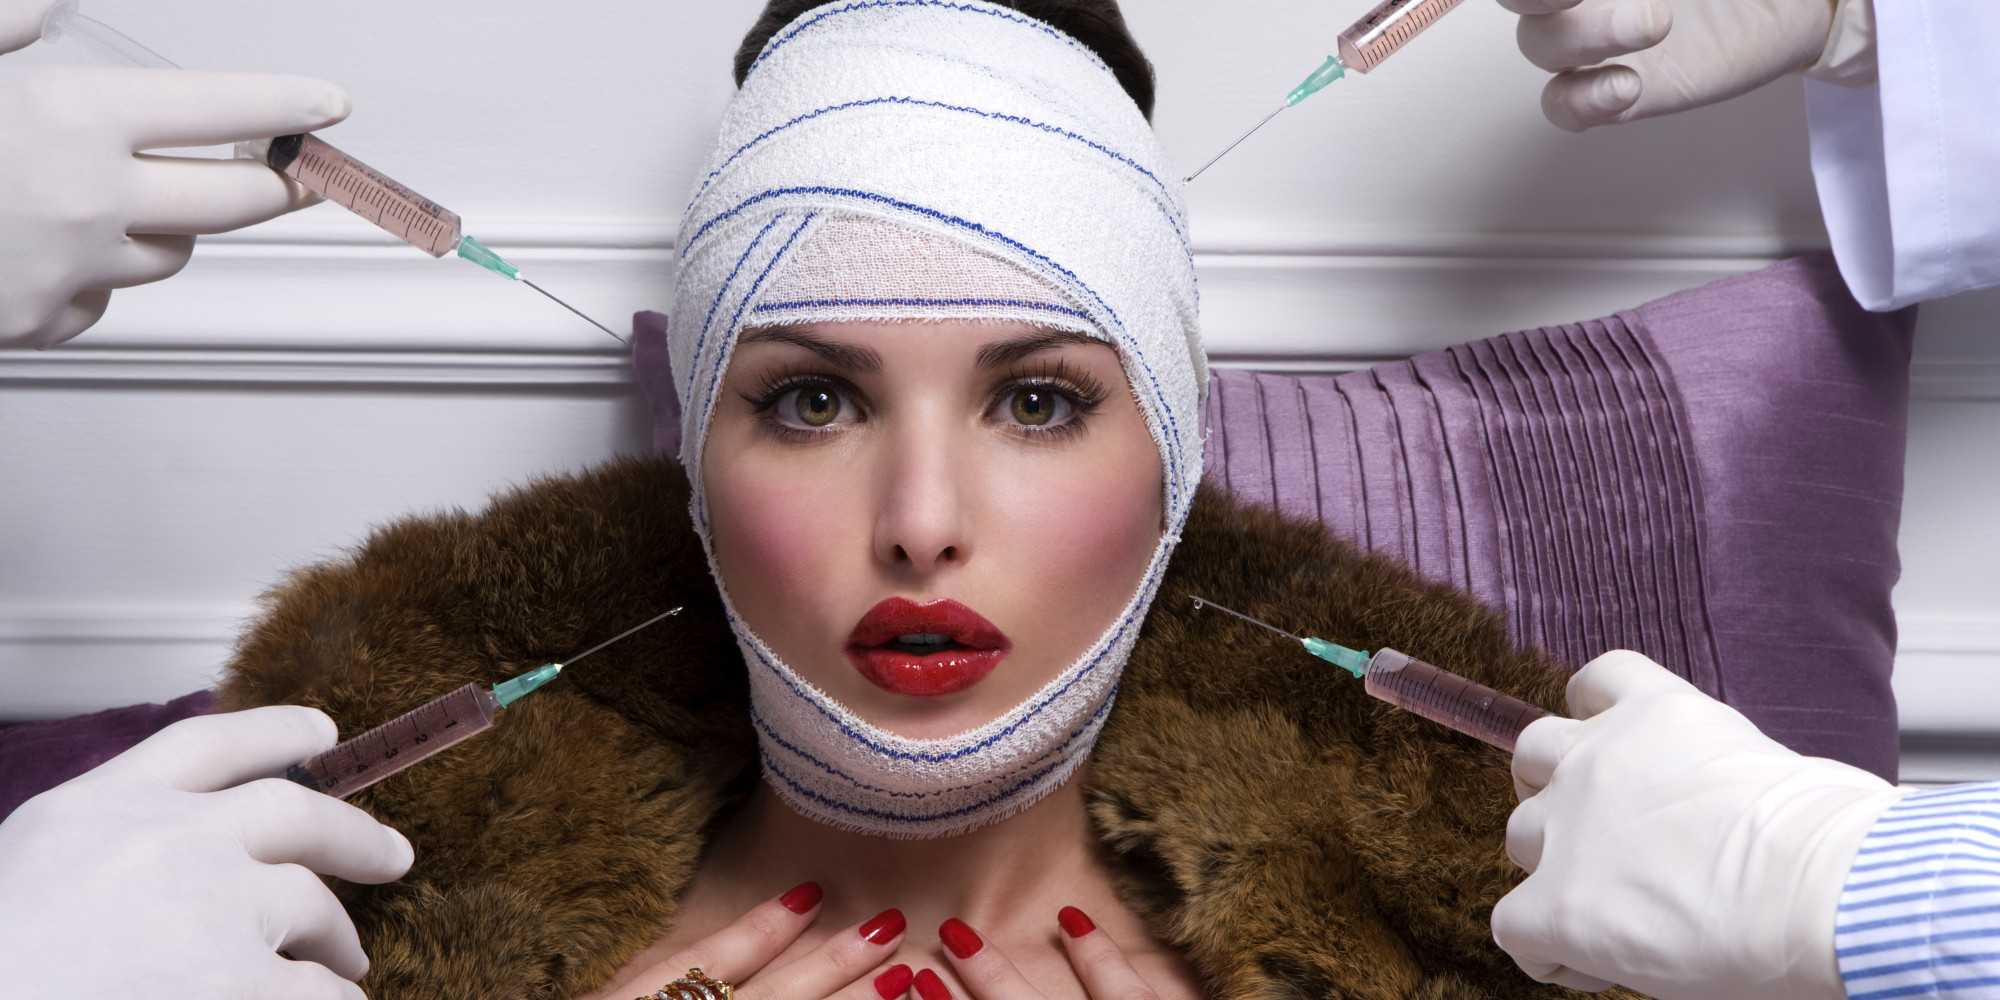 Plastic Surgery clinic to open at Václav Havel international airport - Czech Points